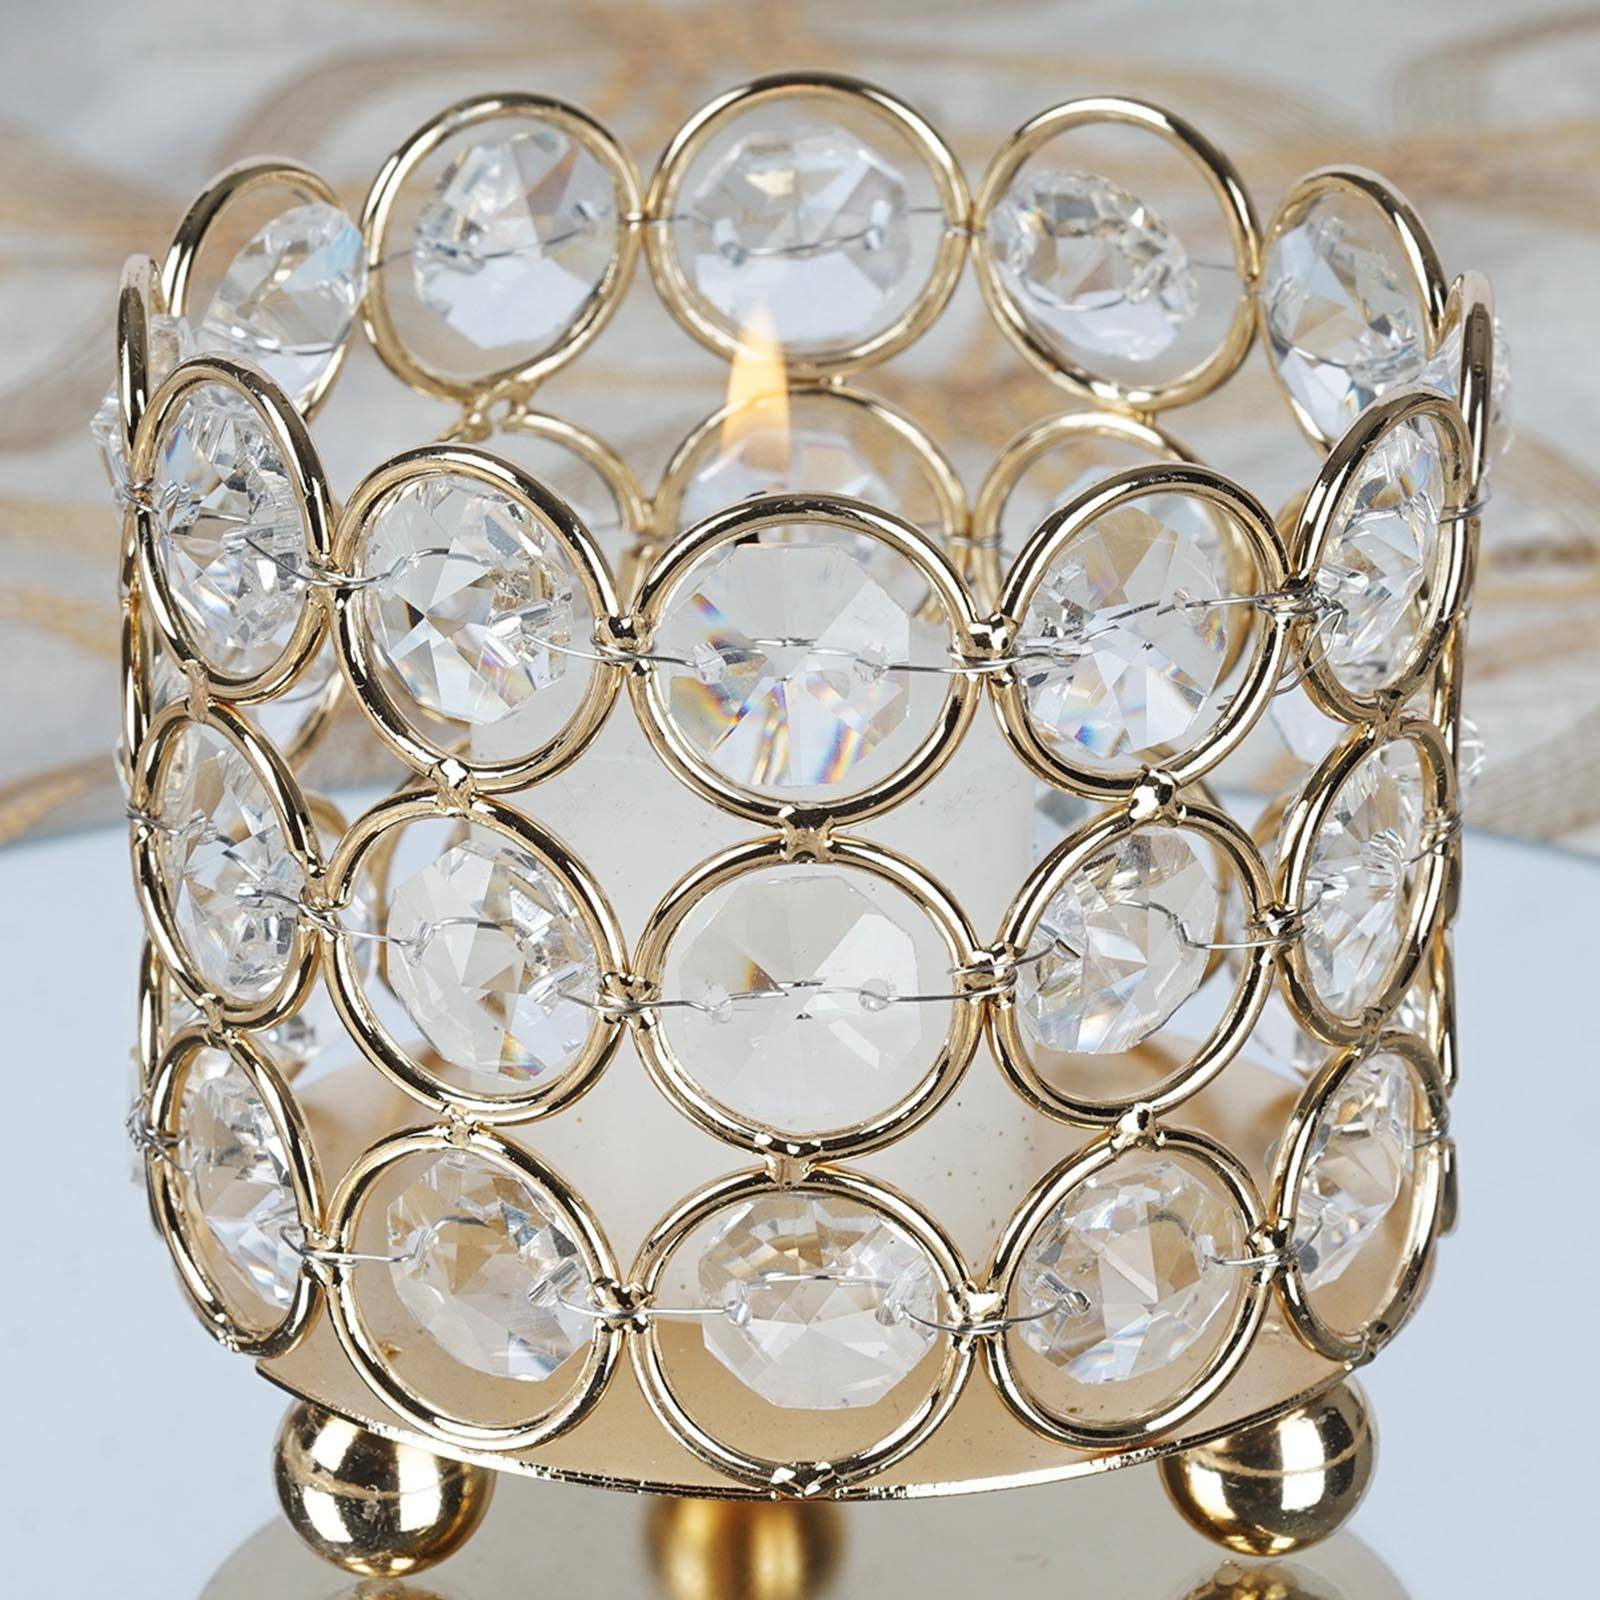 Balsacircle 2 75 Inch Tall Crystal Tealight Votive Candle